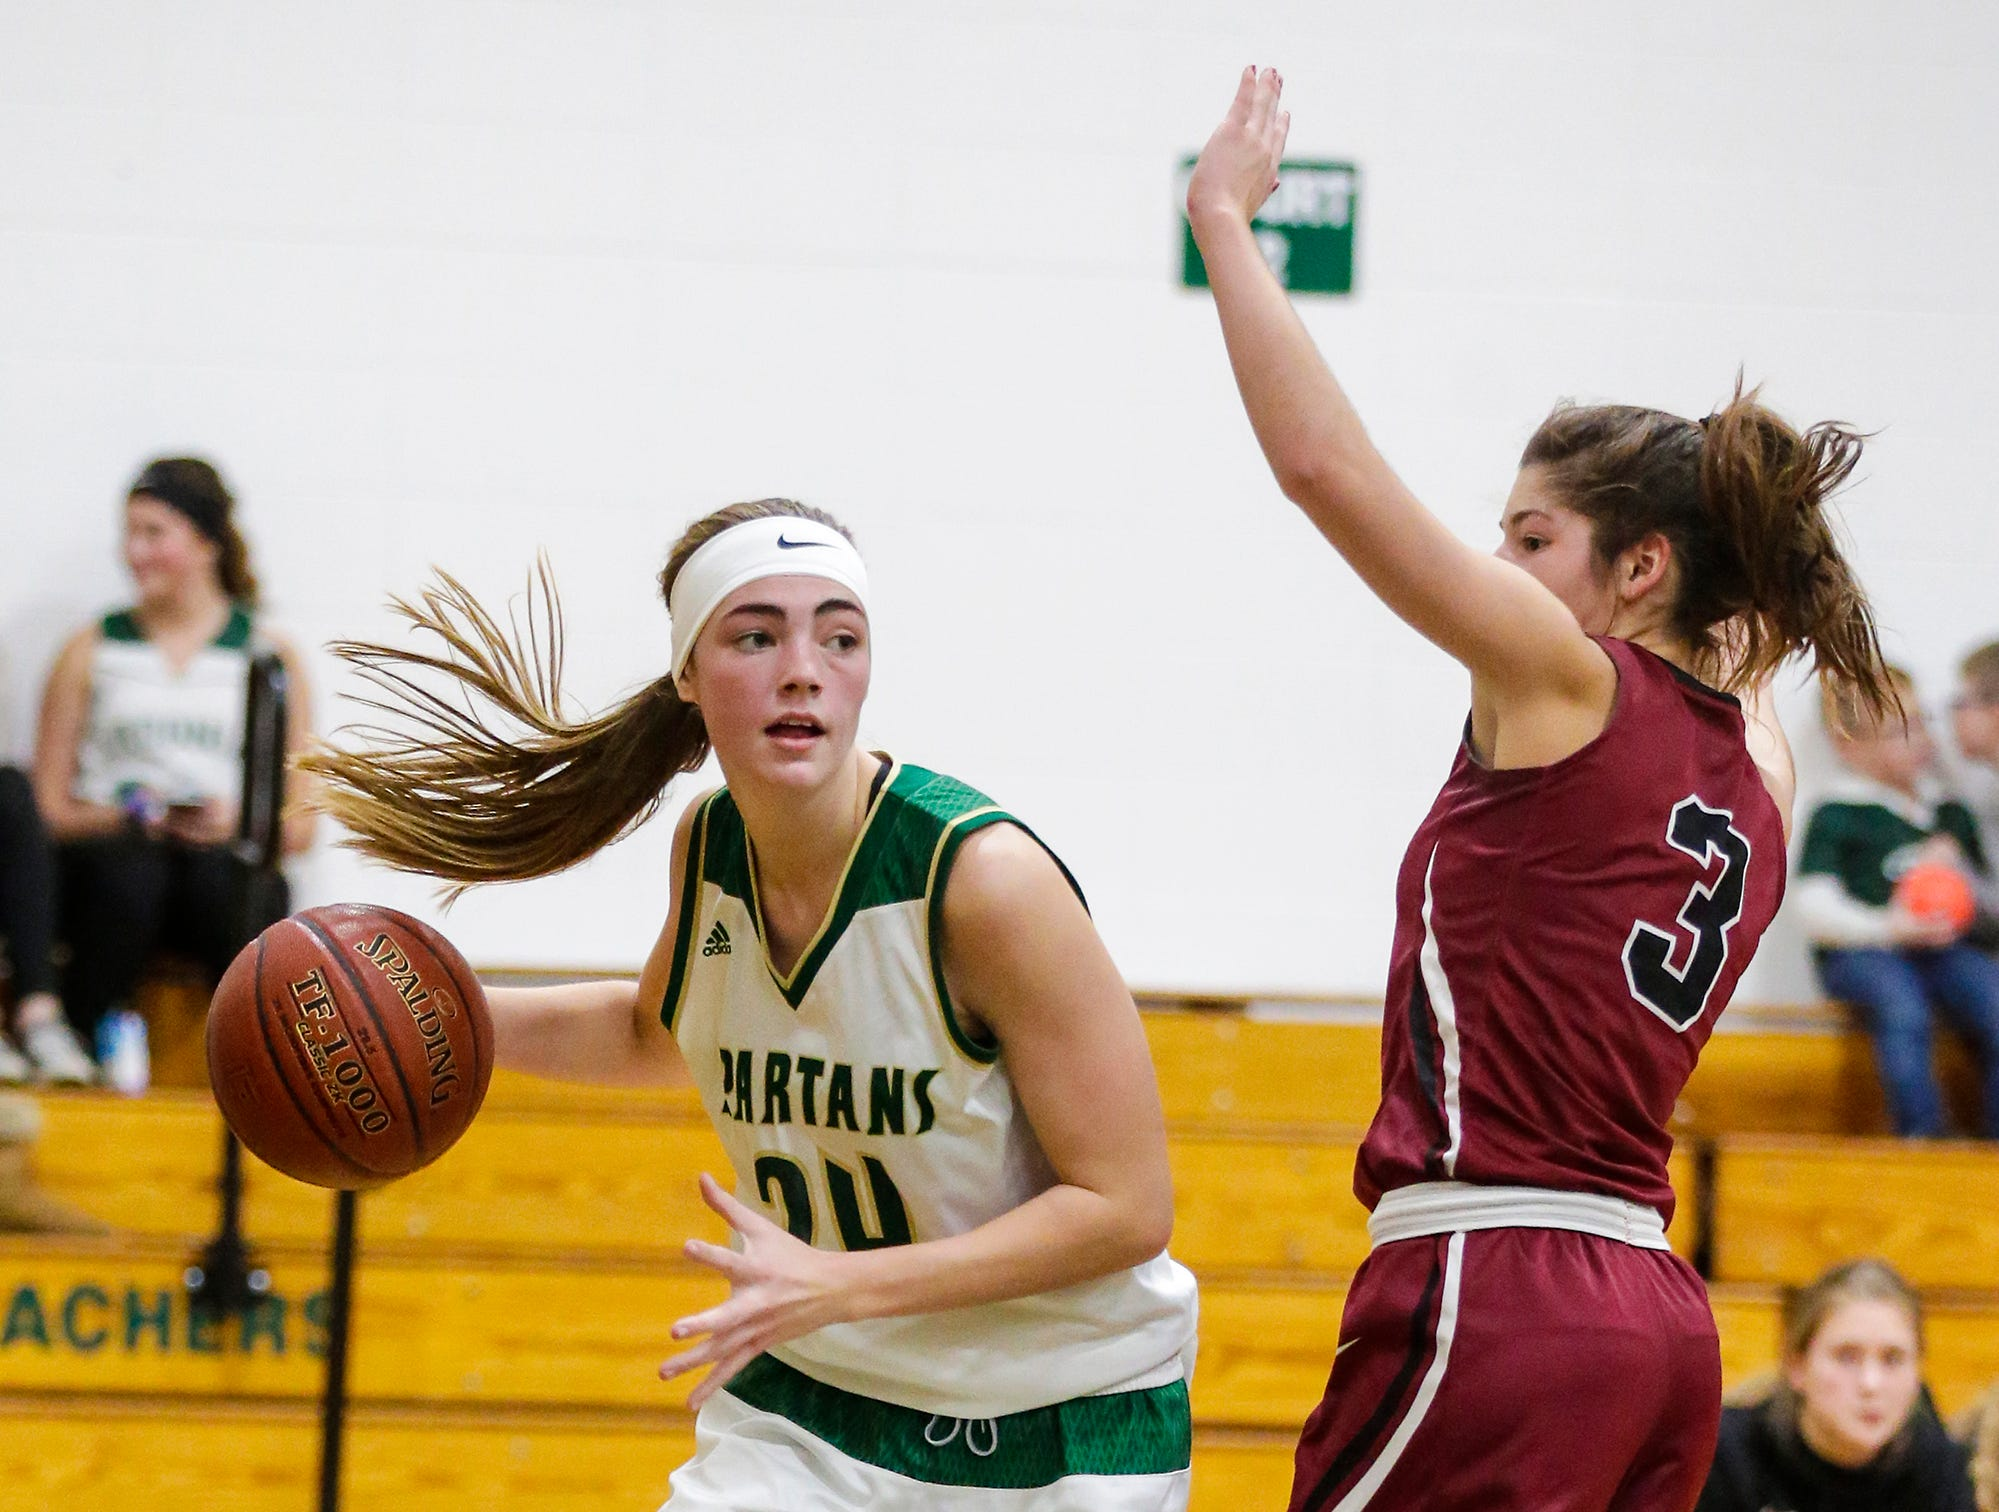 Laconia High School girls basketball's Maci Grade attempts to get by Mayville High School's Amber Schraufnagel during their game Friday, November 30, 2018 in Rosendale. Doug Raflik/USA TODAY NETWORK-Wisconsin